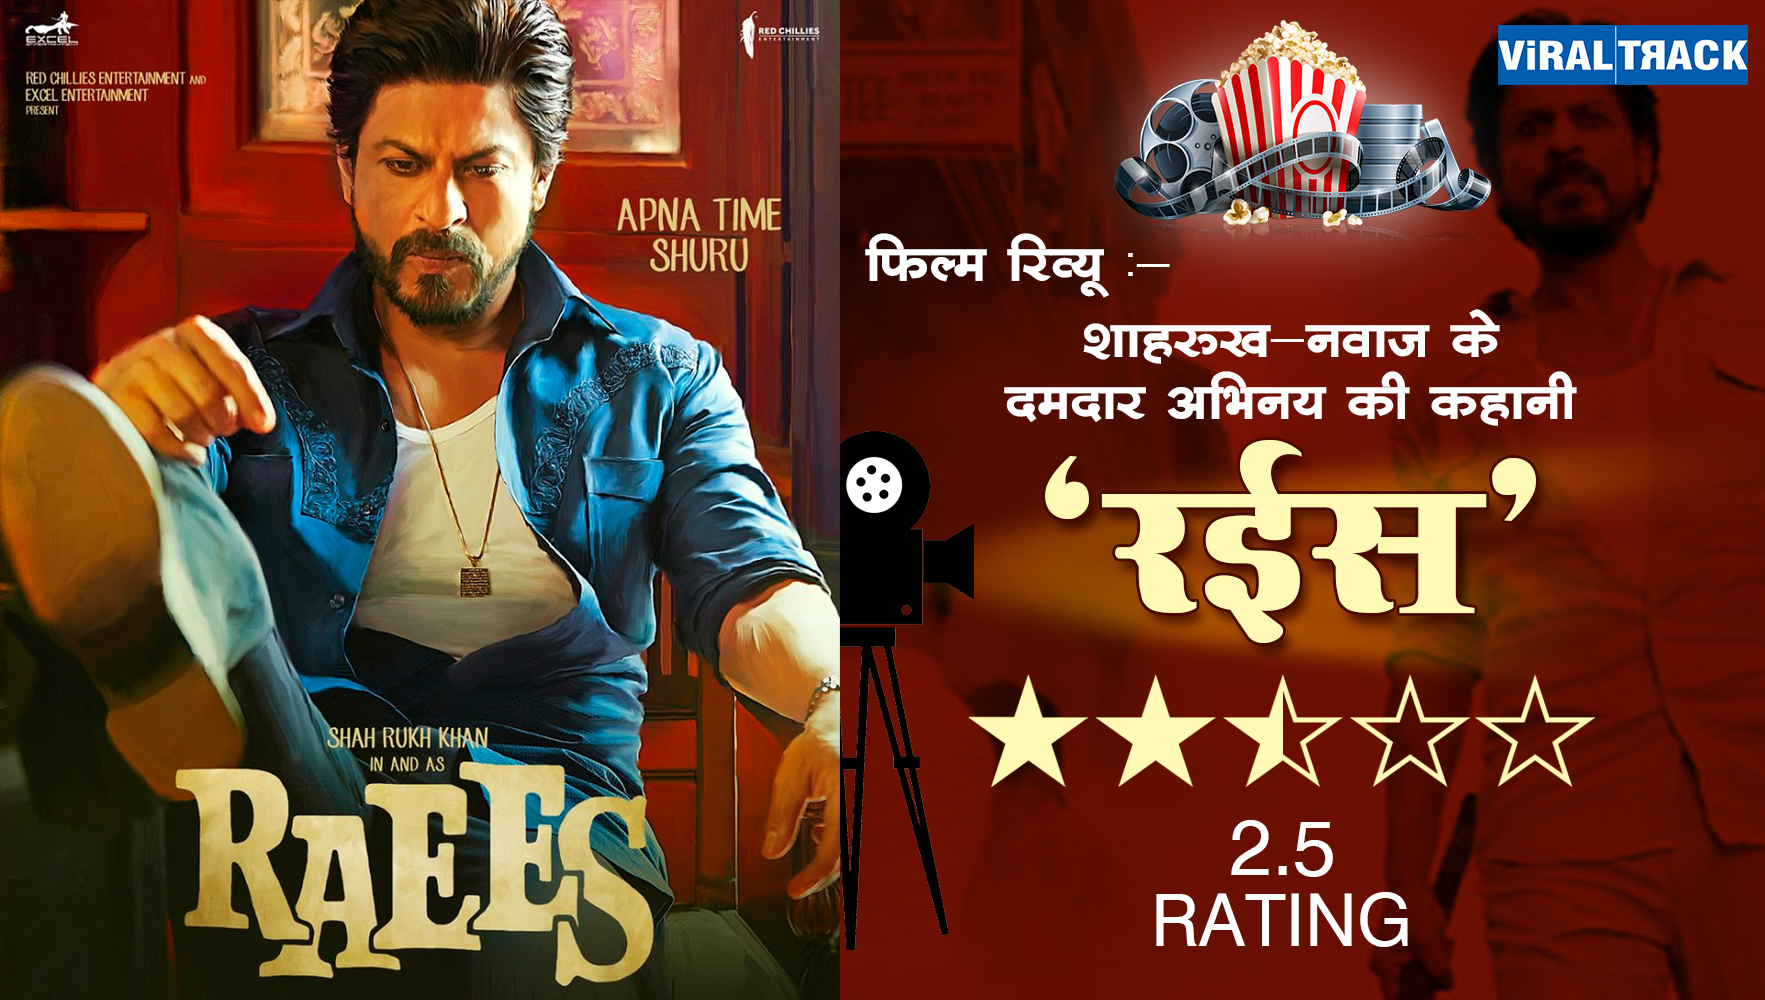 shahrukh khan raees movie review